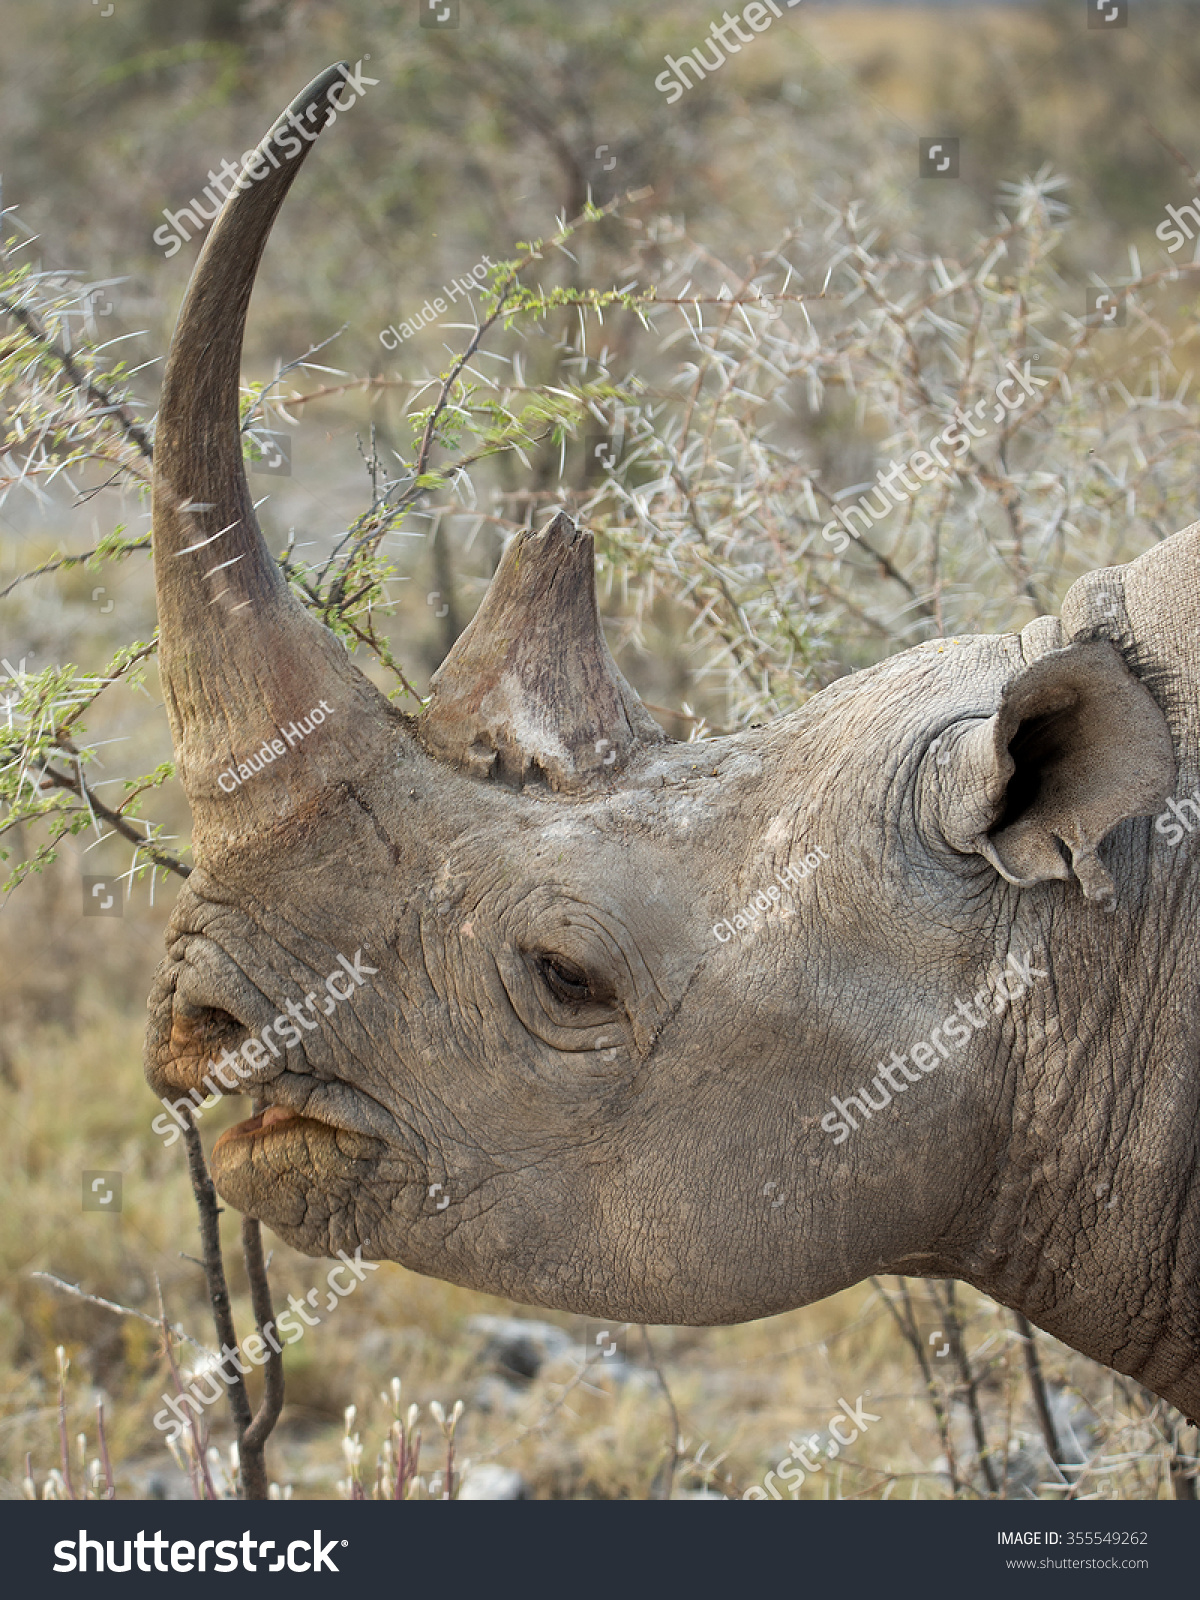 Head of Black Rhinoceros (Diceros bicornis) feeding on bush leaves on the side of the road in Etosha National Park, Namibia